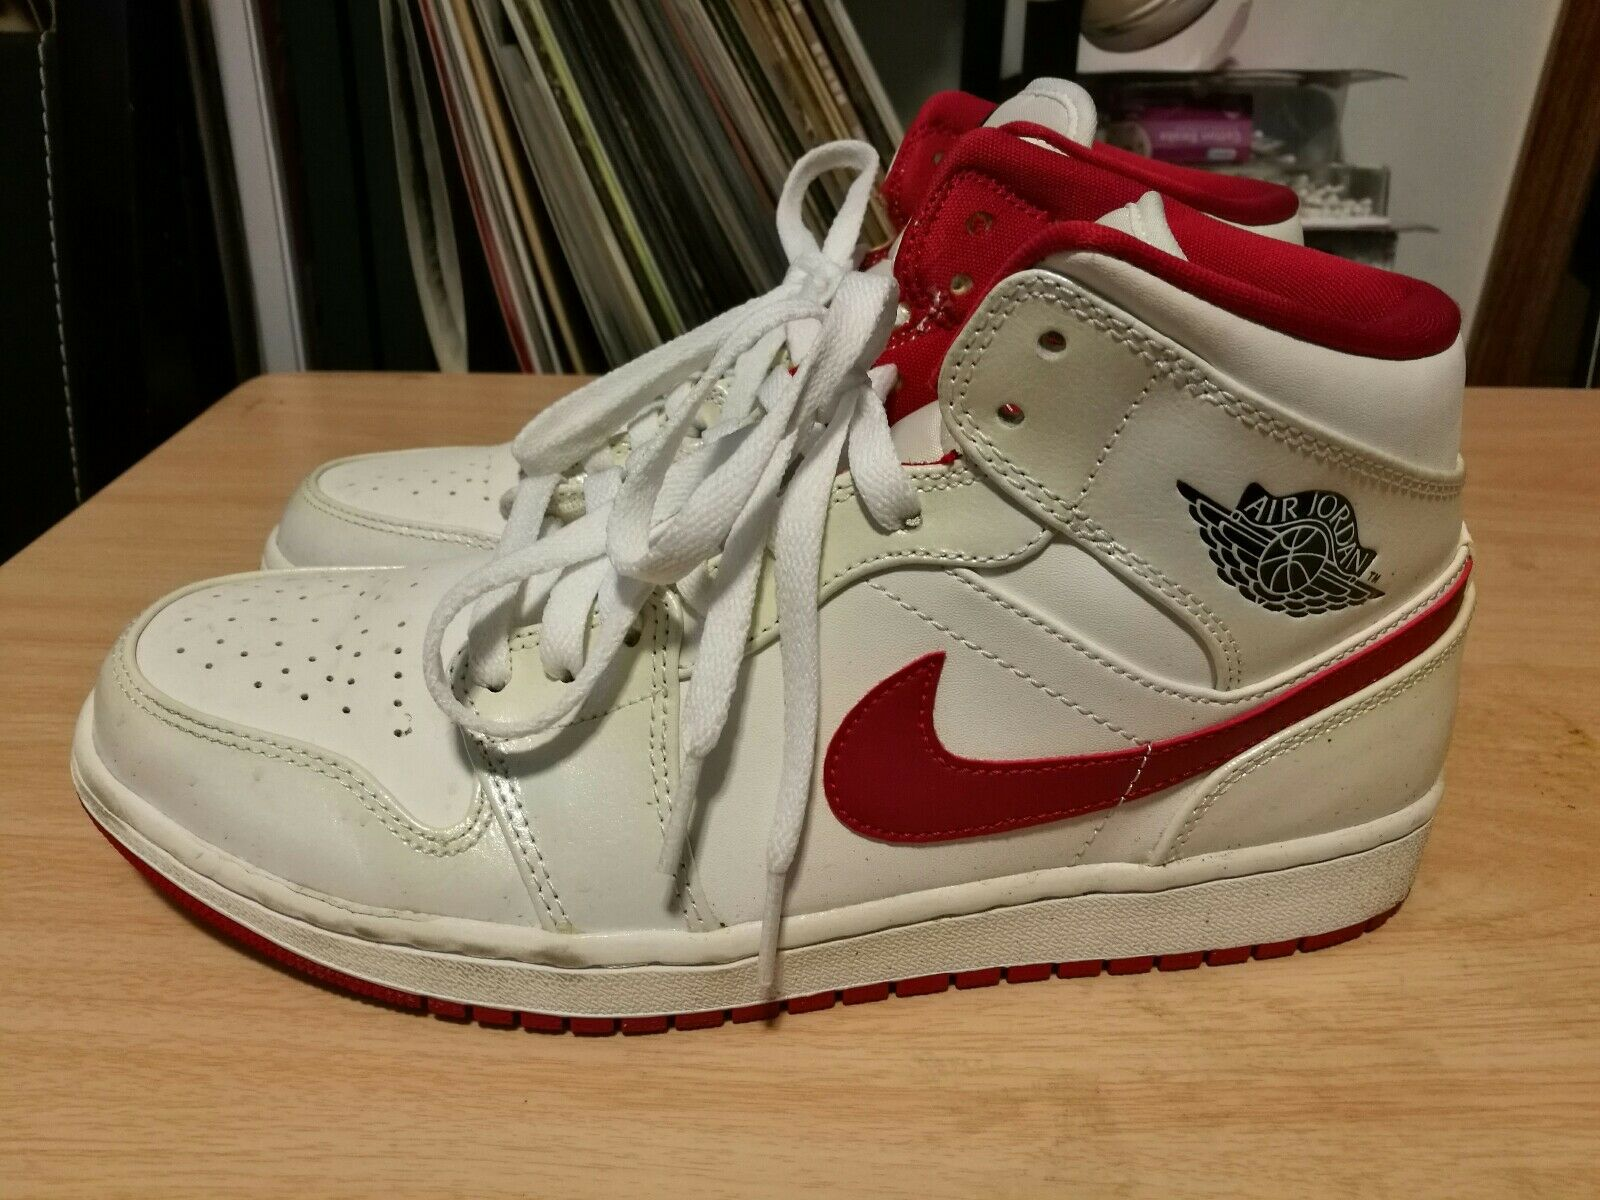 Jordan 1 white/ red size 9 The latest discount shoes for men and women